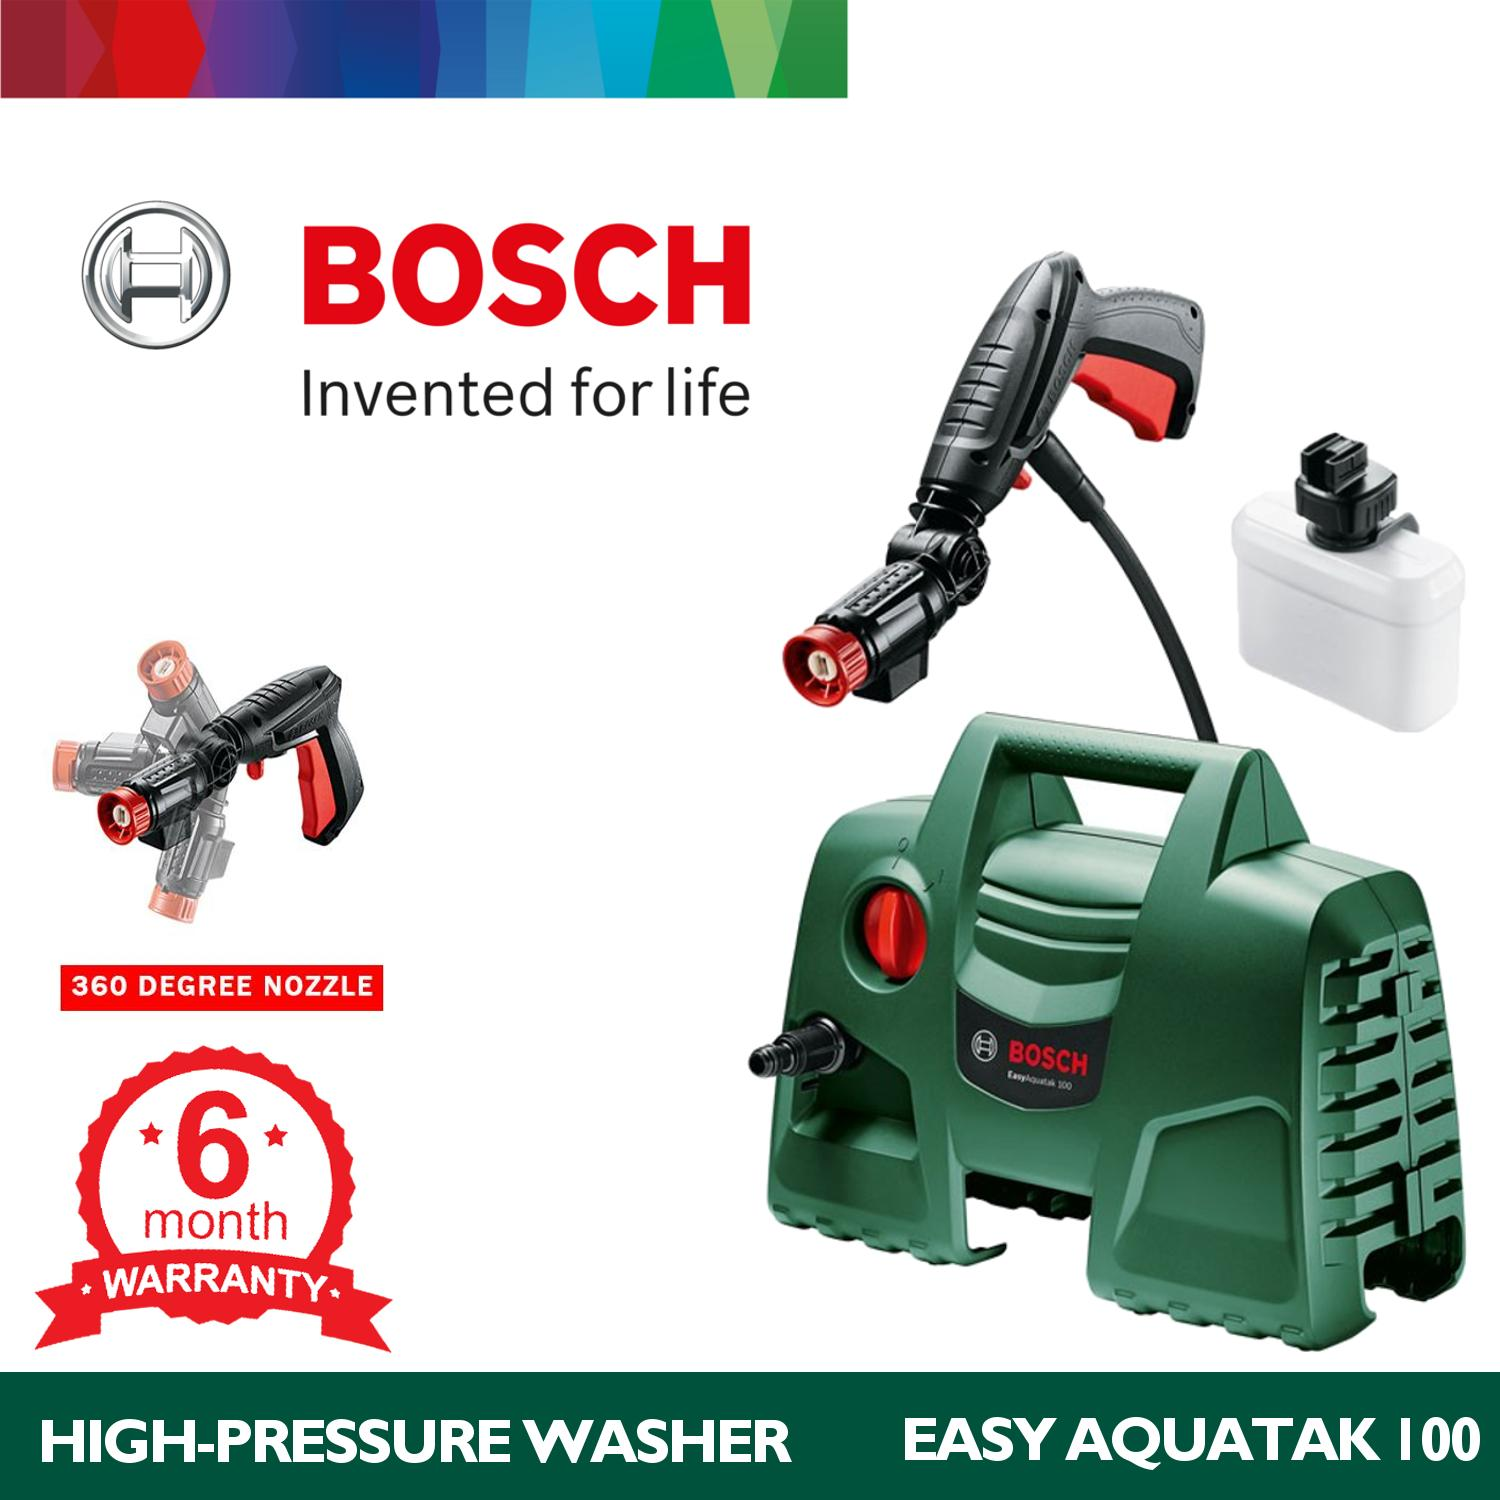 Bosch Easy Aquatak 100 Portable High Pressure Washer with 360 Degree Nozzle and Car Wash Set NEW MODEL 2018 Philippines